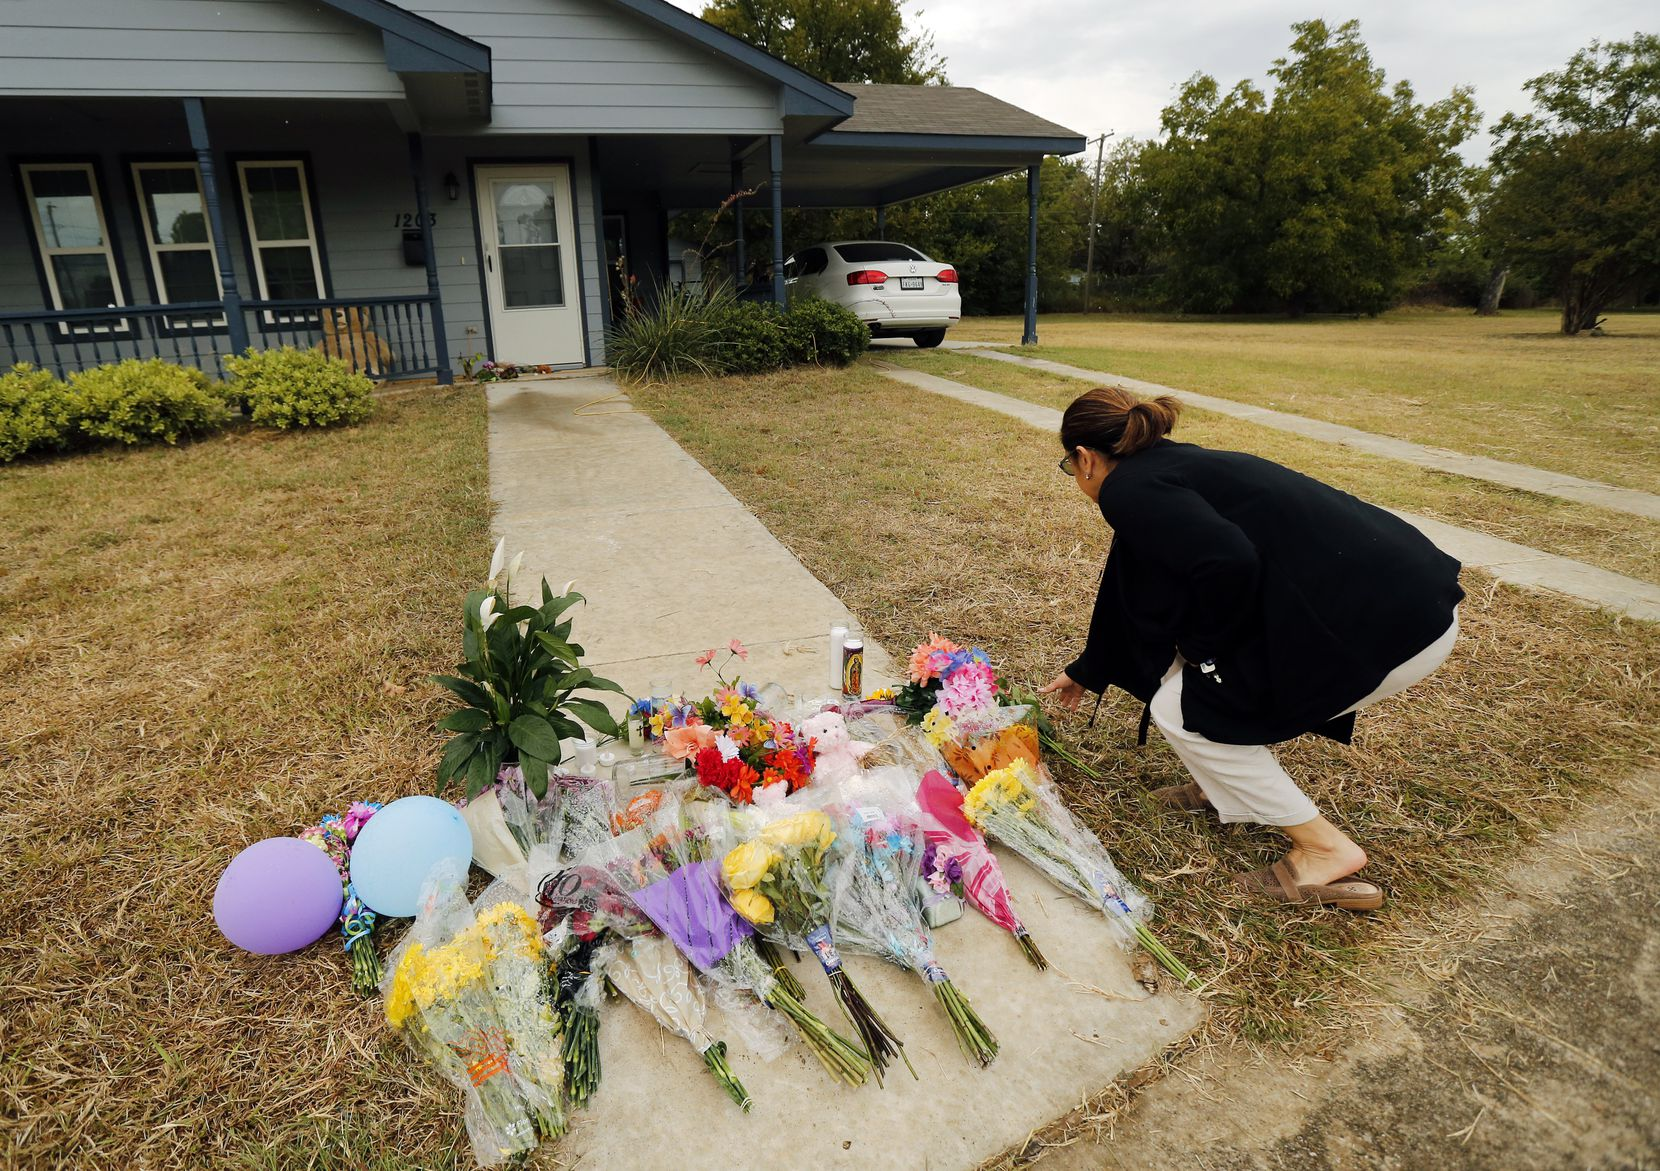 Anastasia Gonzalez of Burleson leaves flowers on the front sidewalk of Atatiana Jefferson's home on E. Allen Ave in Fort Worth. In the wake of Fort Worth police officer Aaron Dean shooting and killing Jefferson in her home, people have been leaving flowers at the scene.